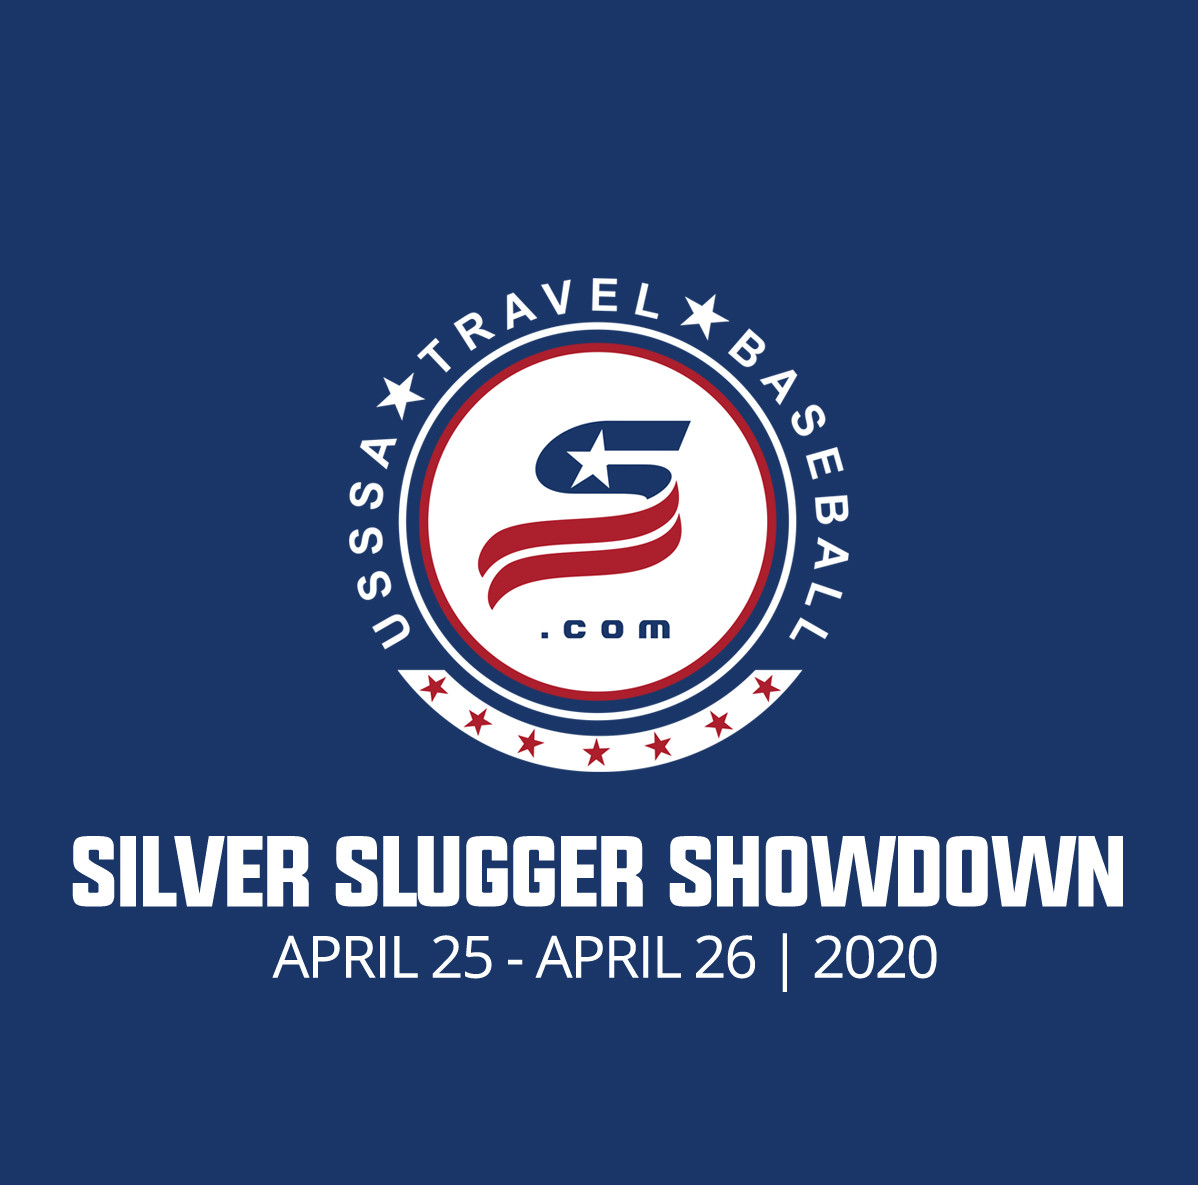 Upstate - SILVER SLUGGER SHOWDOWN